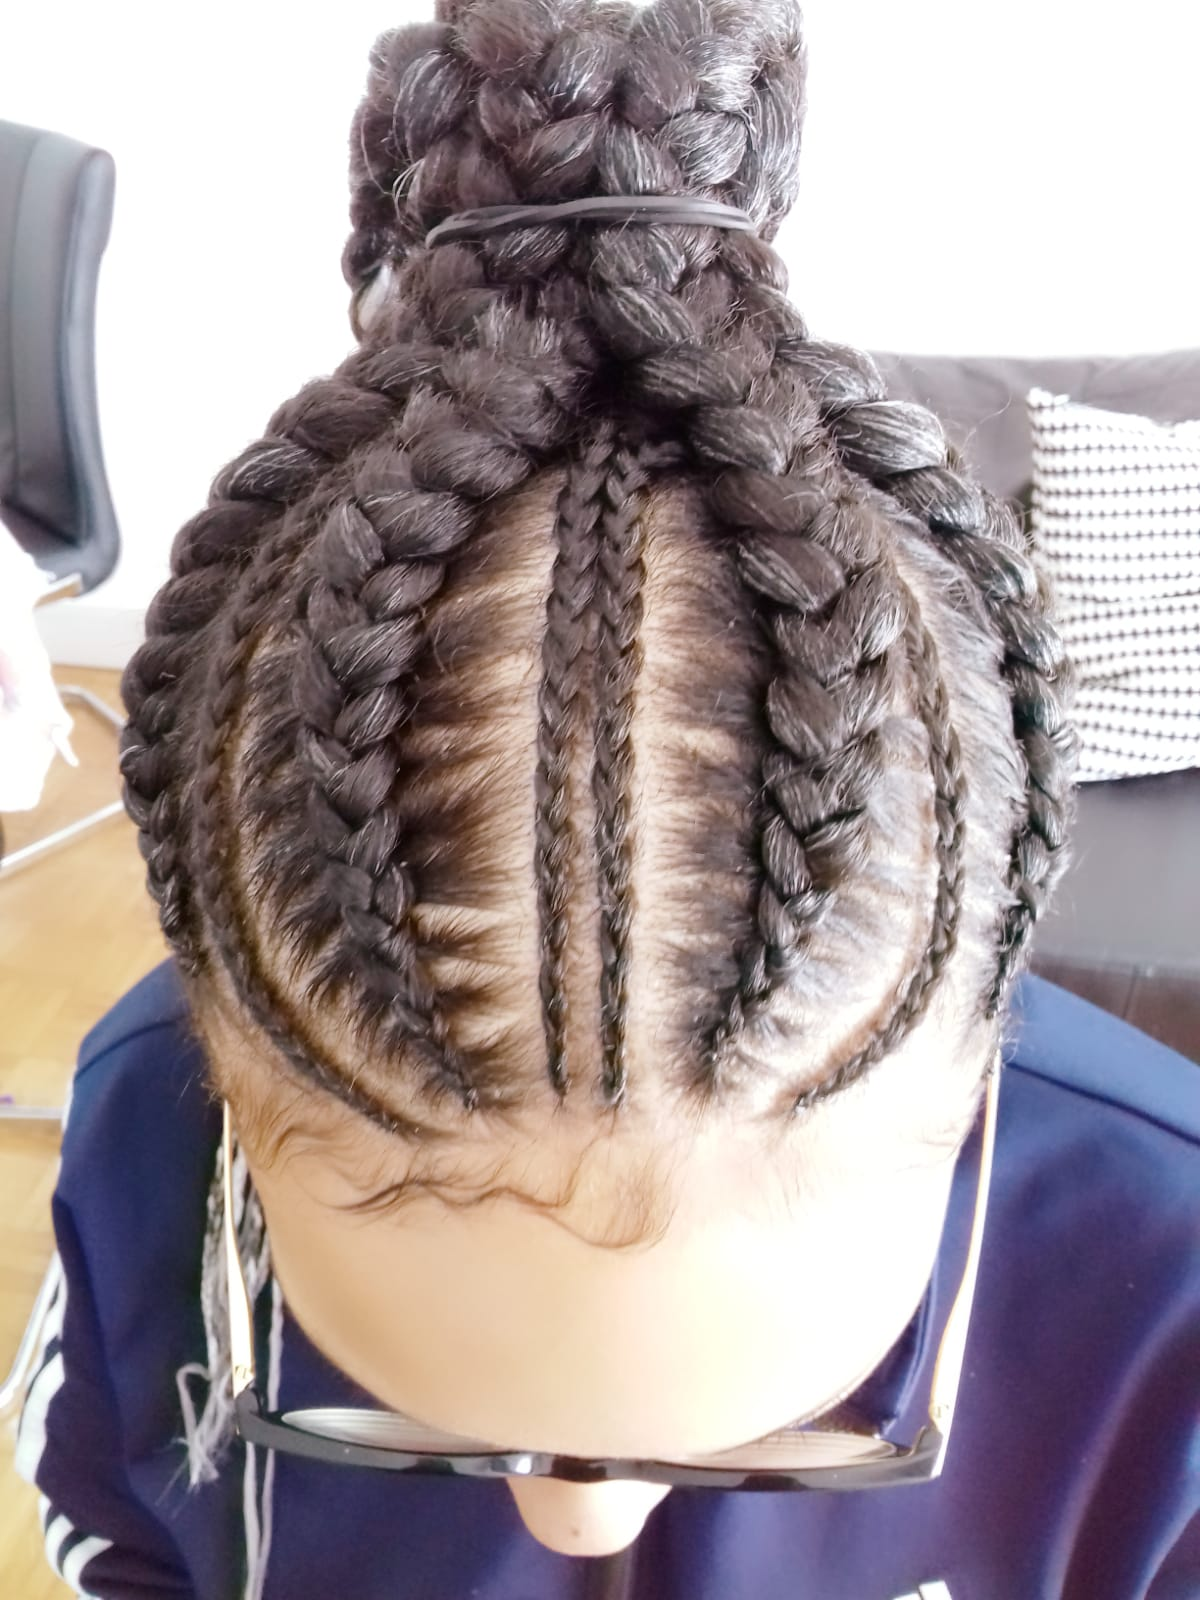 salon de coiffure afro tresse tresses box braids crochet braids vanilles tissages paris 75 77 78 91 92 93 94 95 ABISNDWC